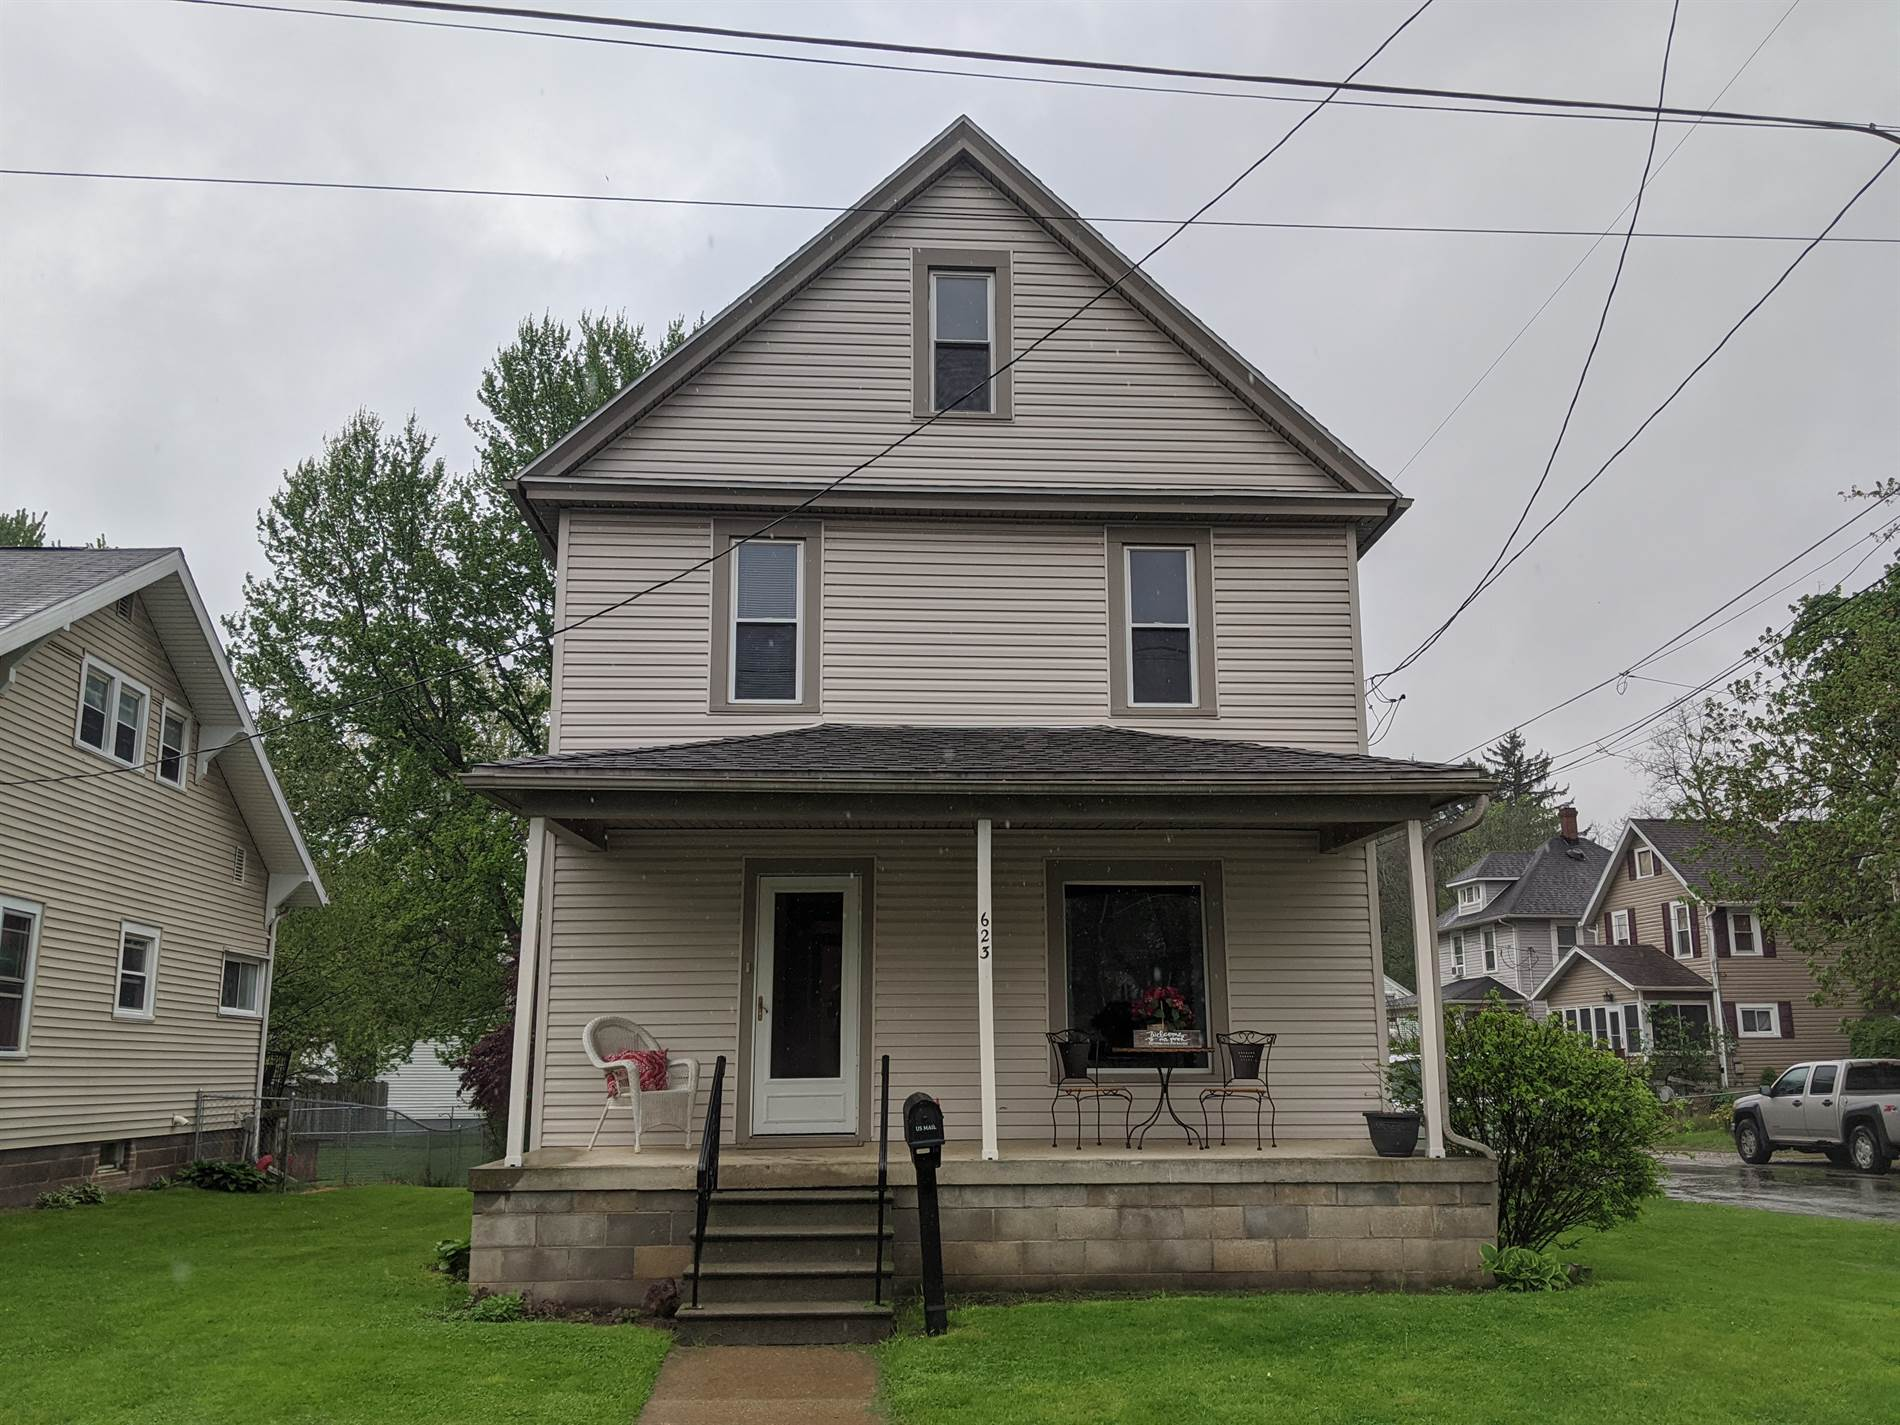 623 Evergreen Street, Ashland, OH 44805